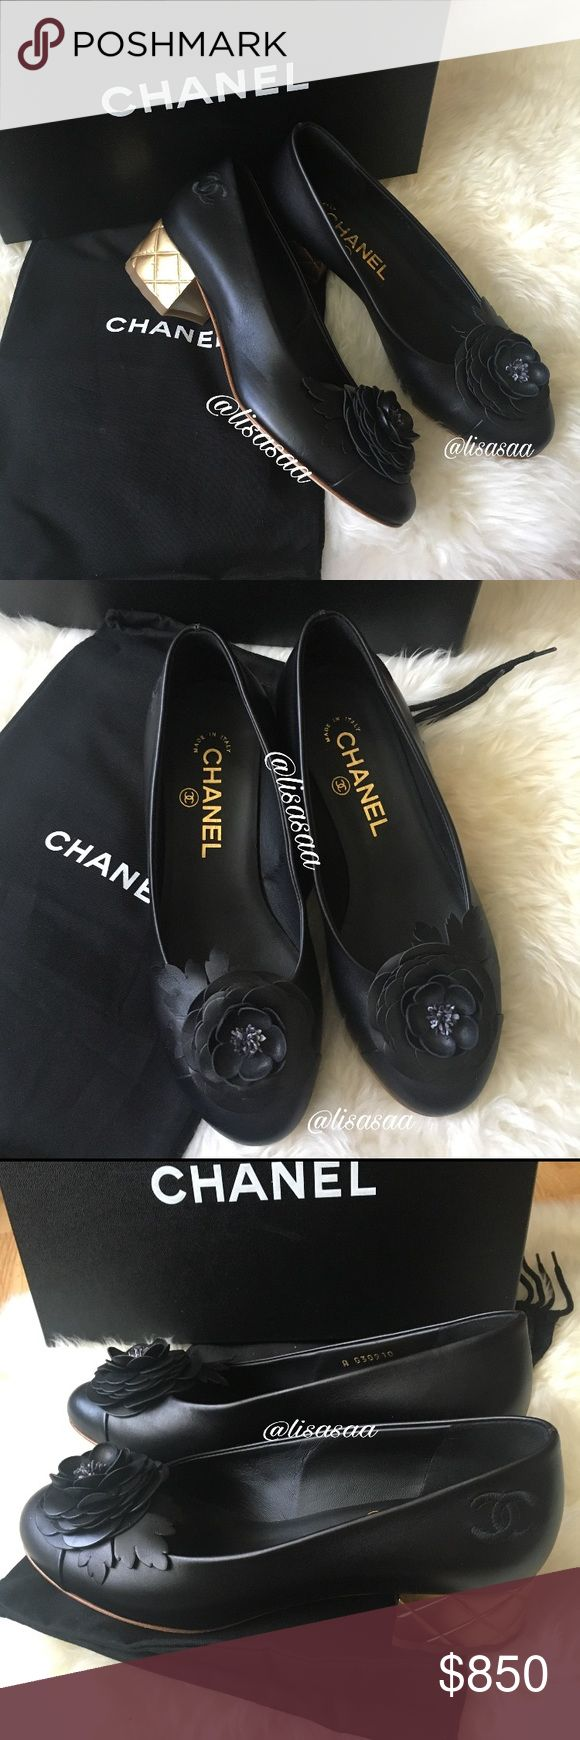 Authentic Chanel Gold Black Calfskin Quilted Heels New, authentic Chanel calfskin pumps with a gold, quilted 40mm heel, and the most adorable iconic Calfskin Chanel flower. These were never worn, however the soles are scuffed from being tried on as pictured. The sole also has the sticker where the price used to be. Purchased from Saks. Comes with box and dust bags. Words cannot describe how adorable these pumps are and how soft they feel! You cannot find these in stores anymore!! Paid $875…